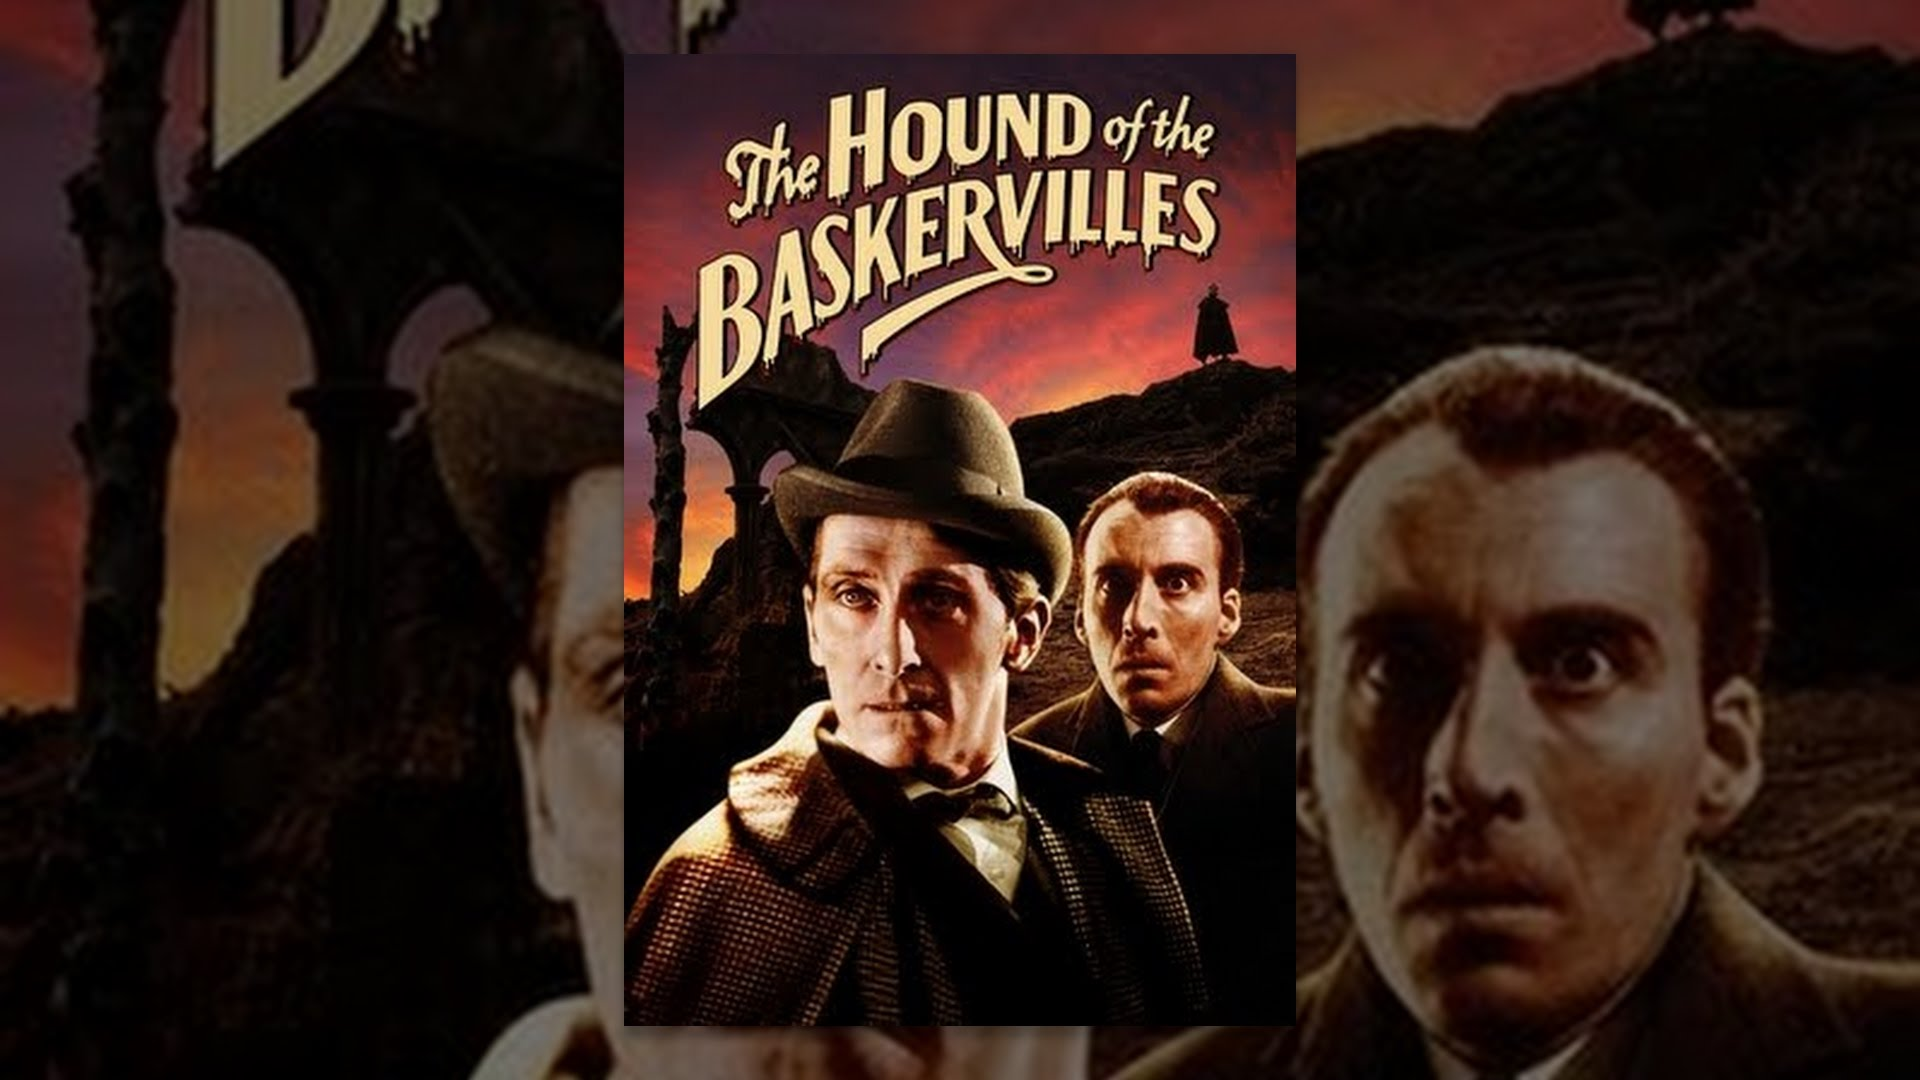 The hound of baskervilles 1959 online dating. The hound of baskervilles 1959 online dating.